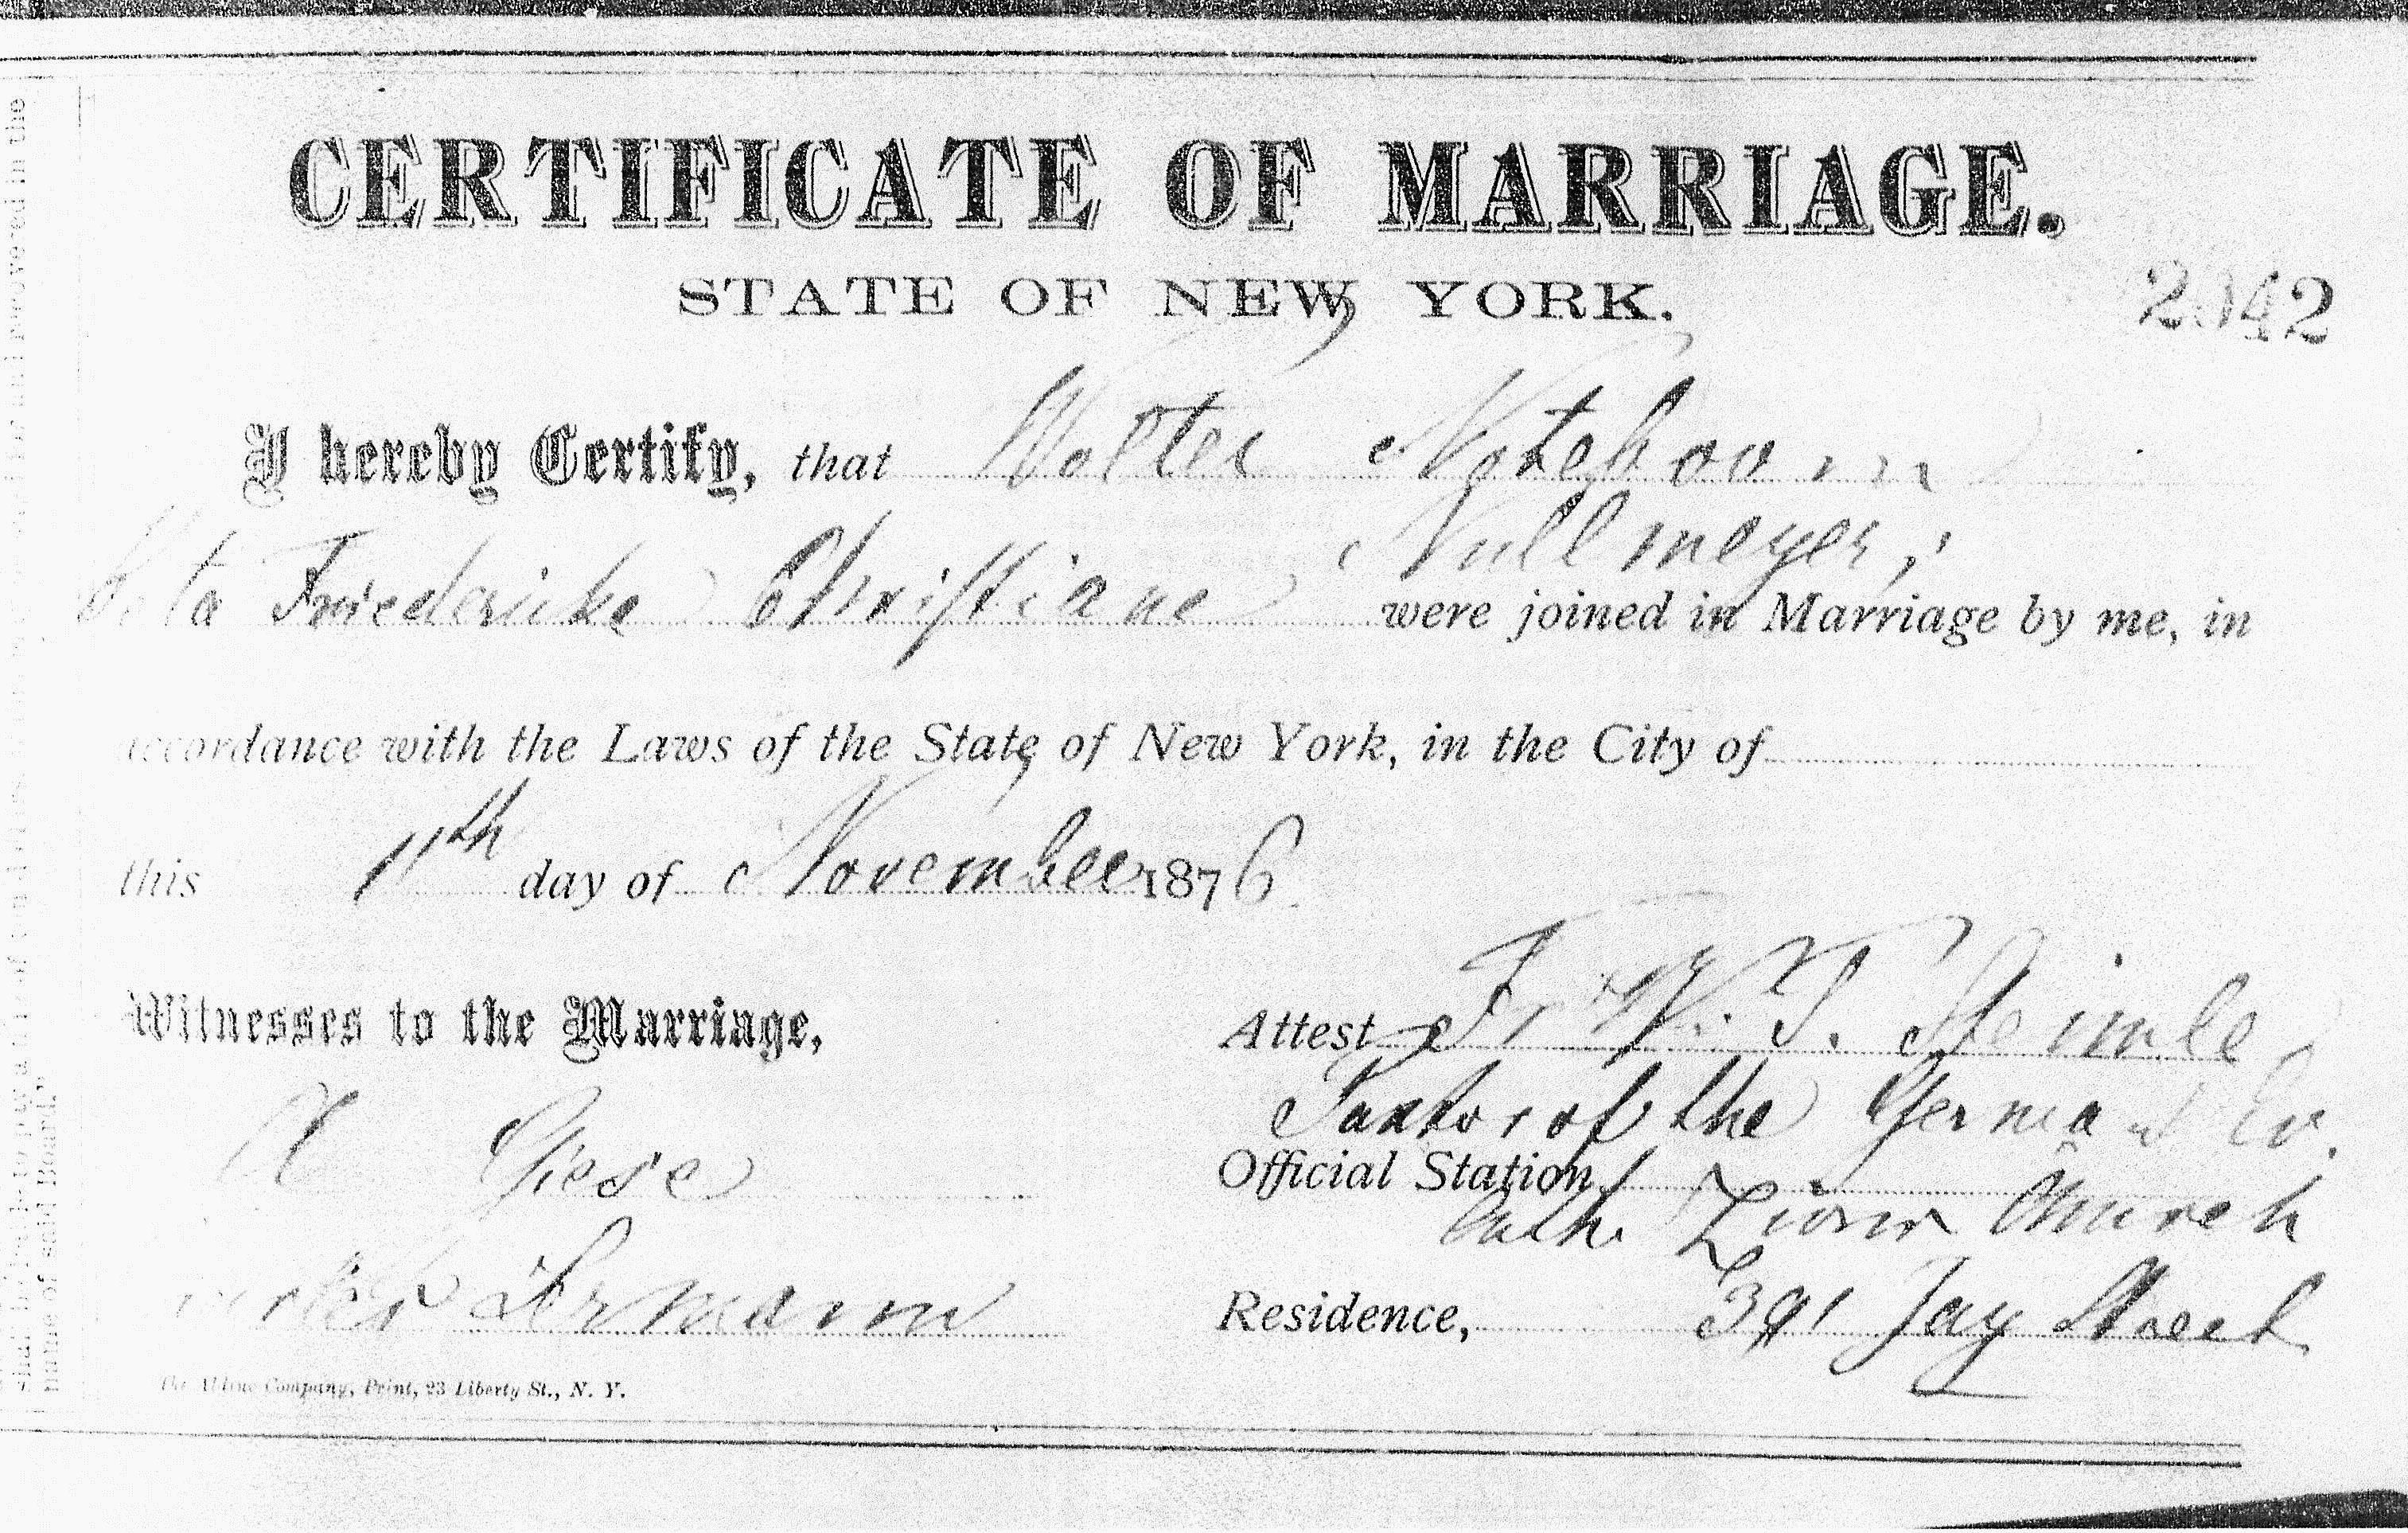 Marriage Certificates of Walter Noteboom | Roots of Kinship